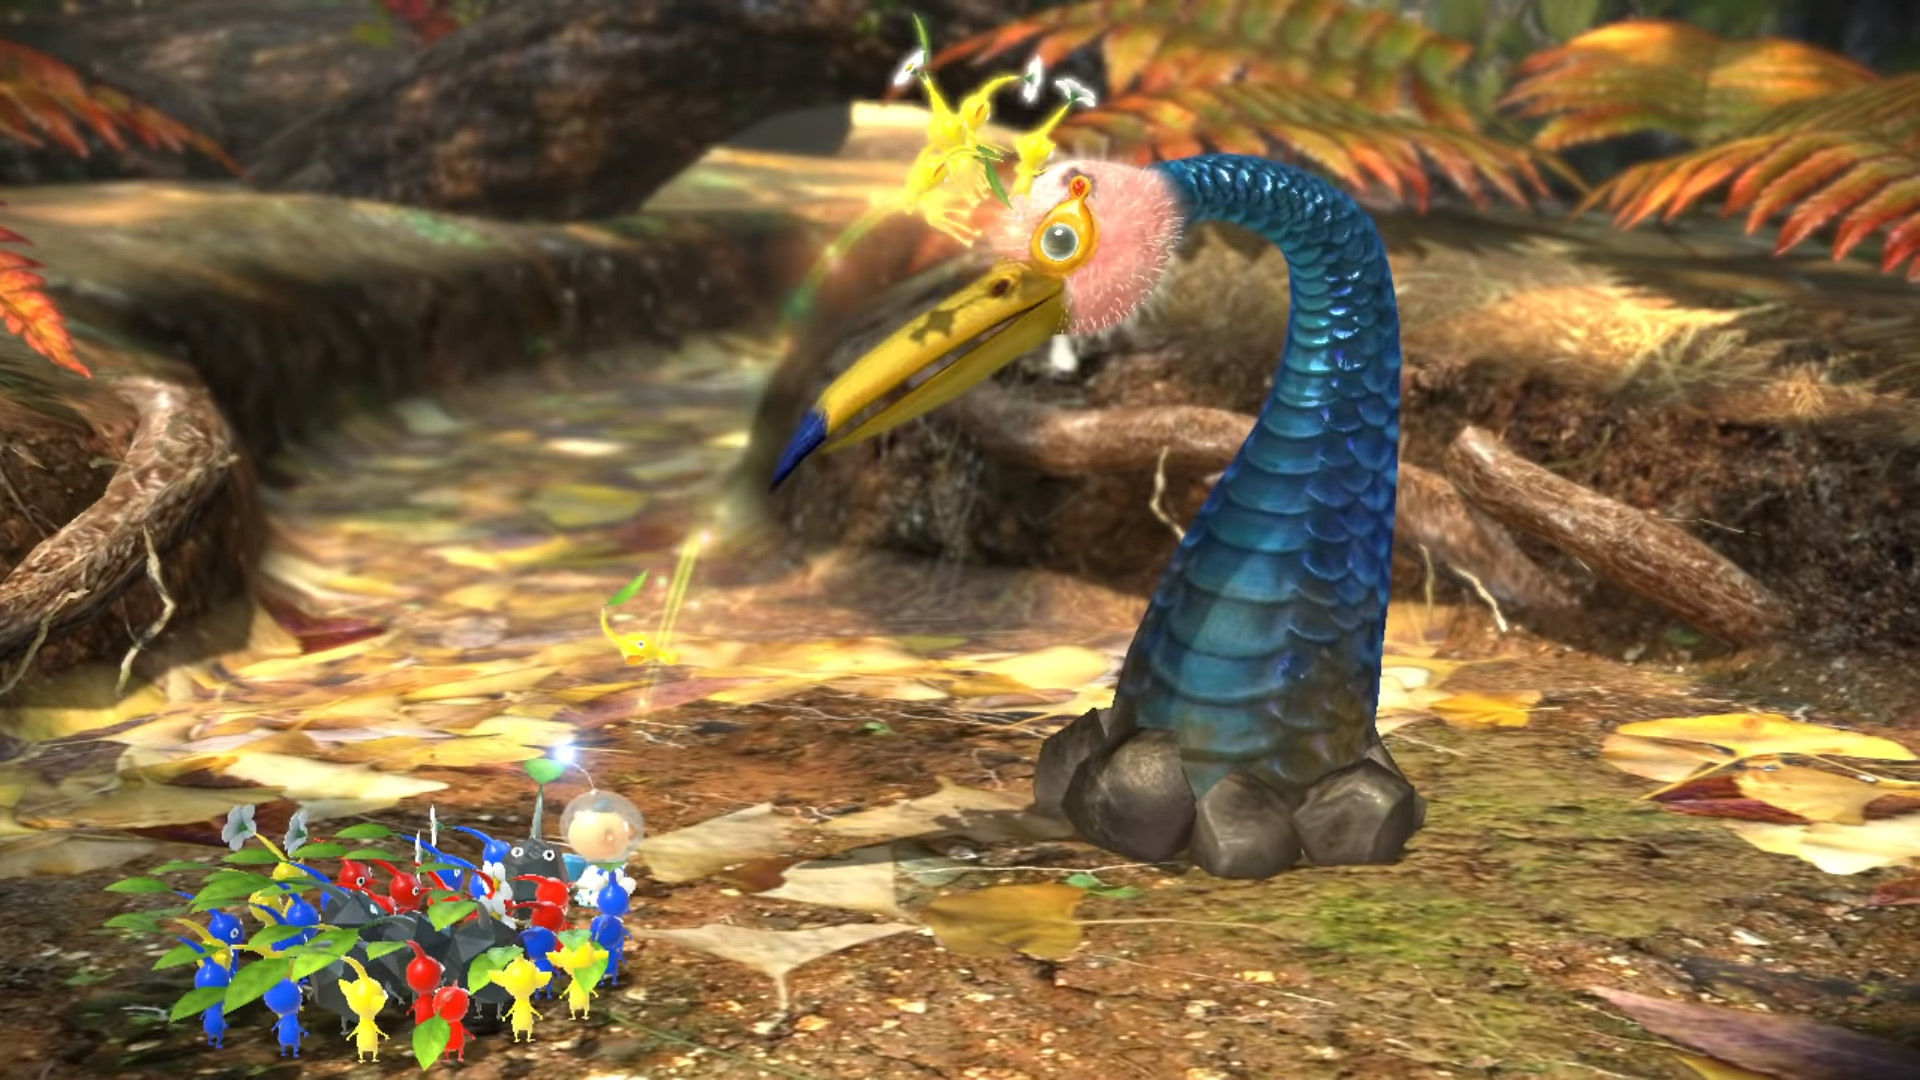 This Pikmin 3 Deluxe video will get you up to speed with cute illustrations screenshot